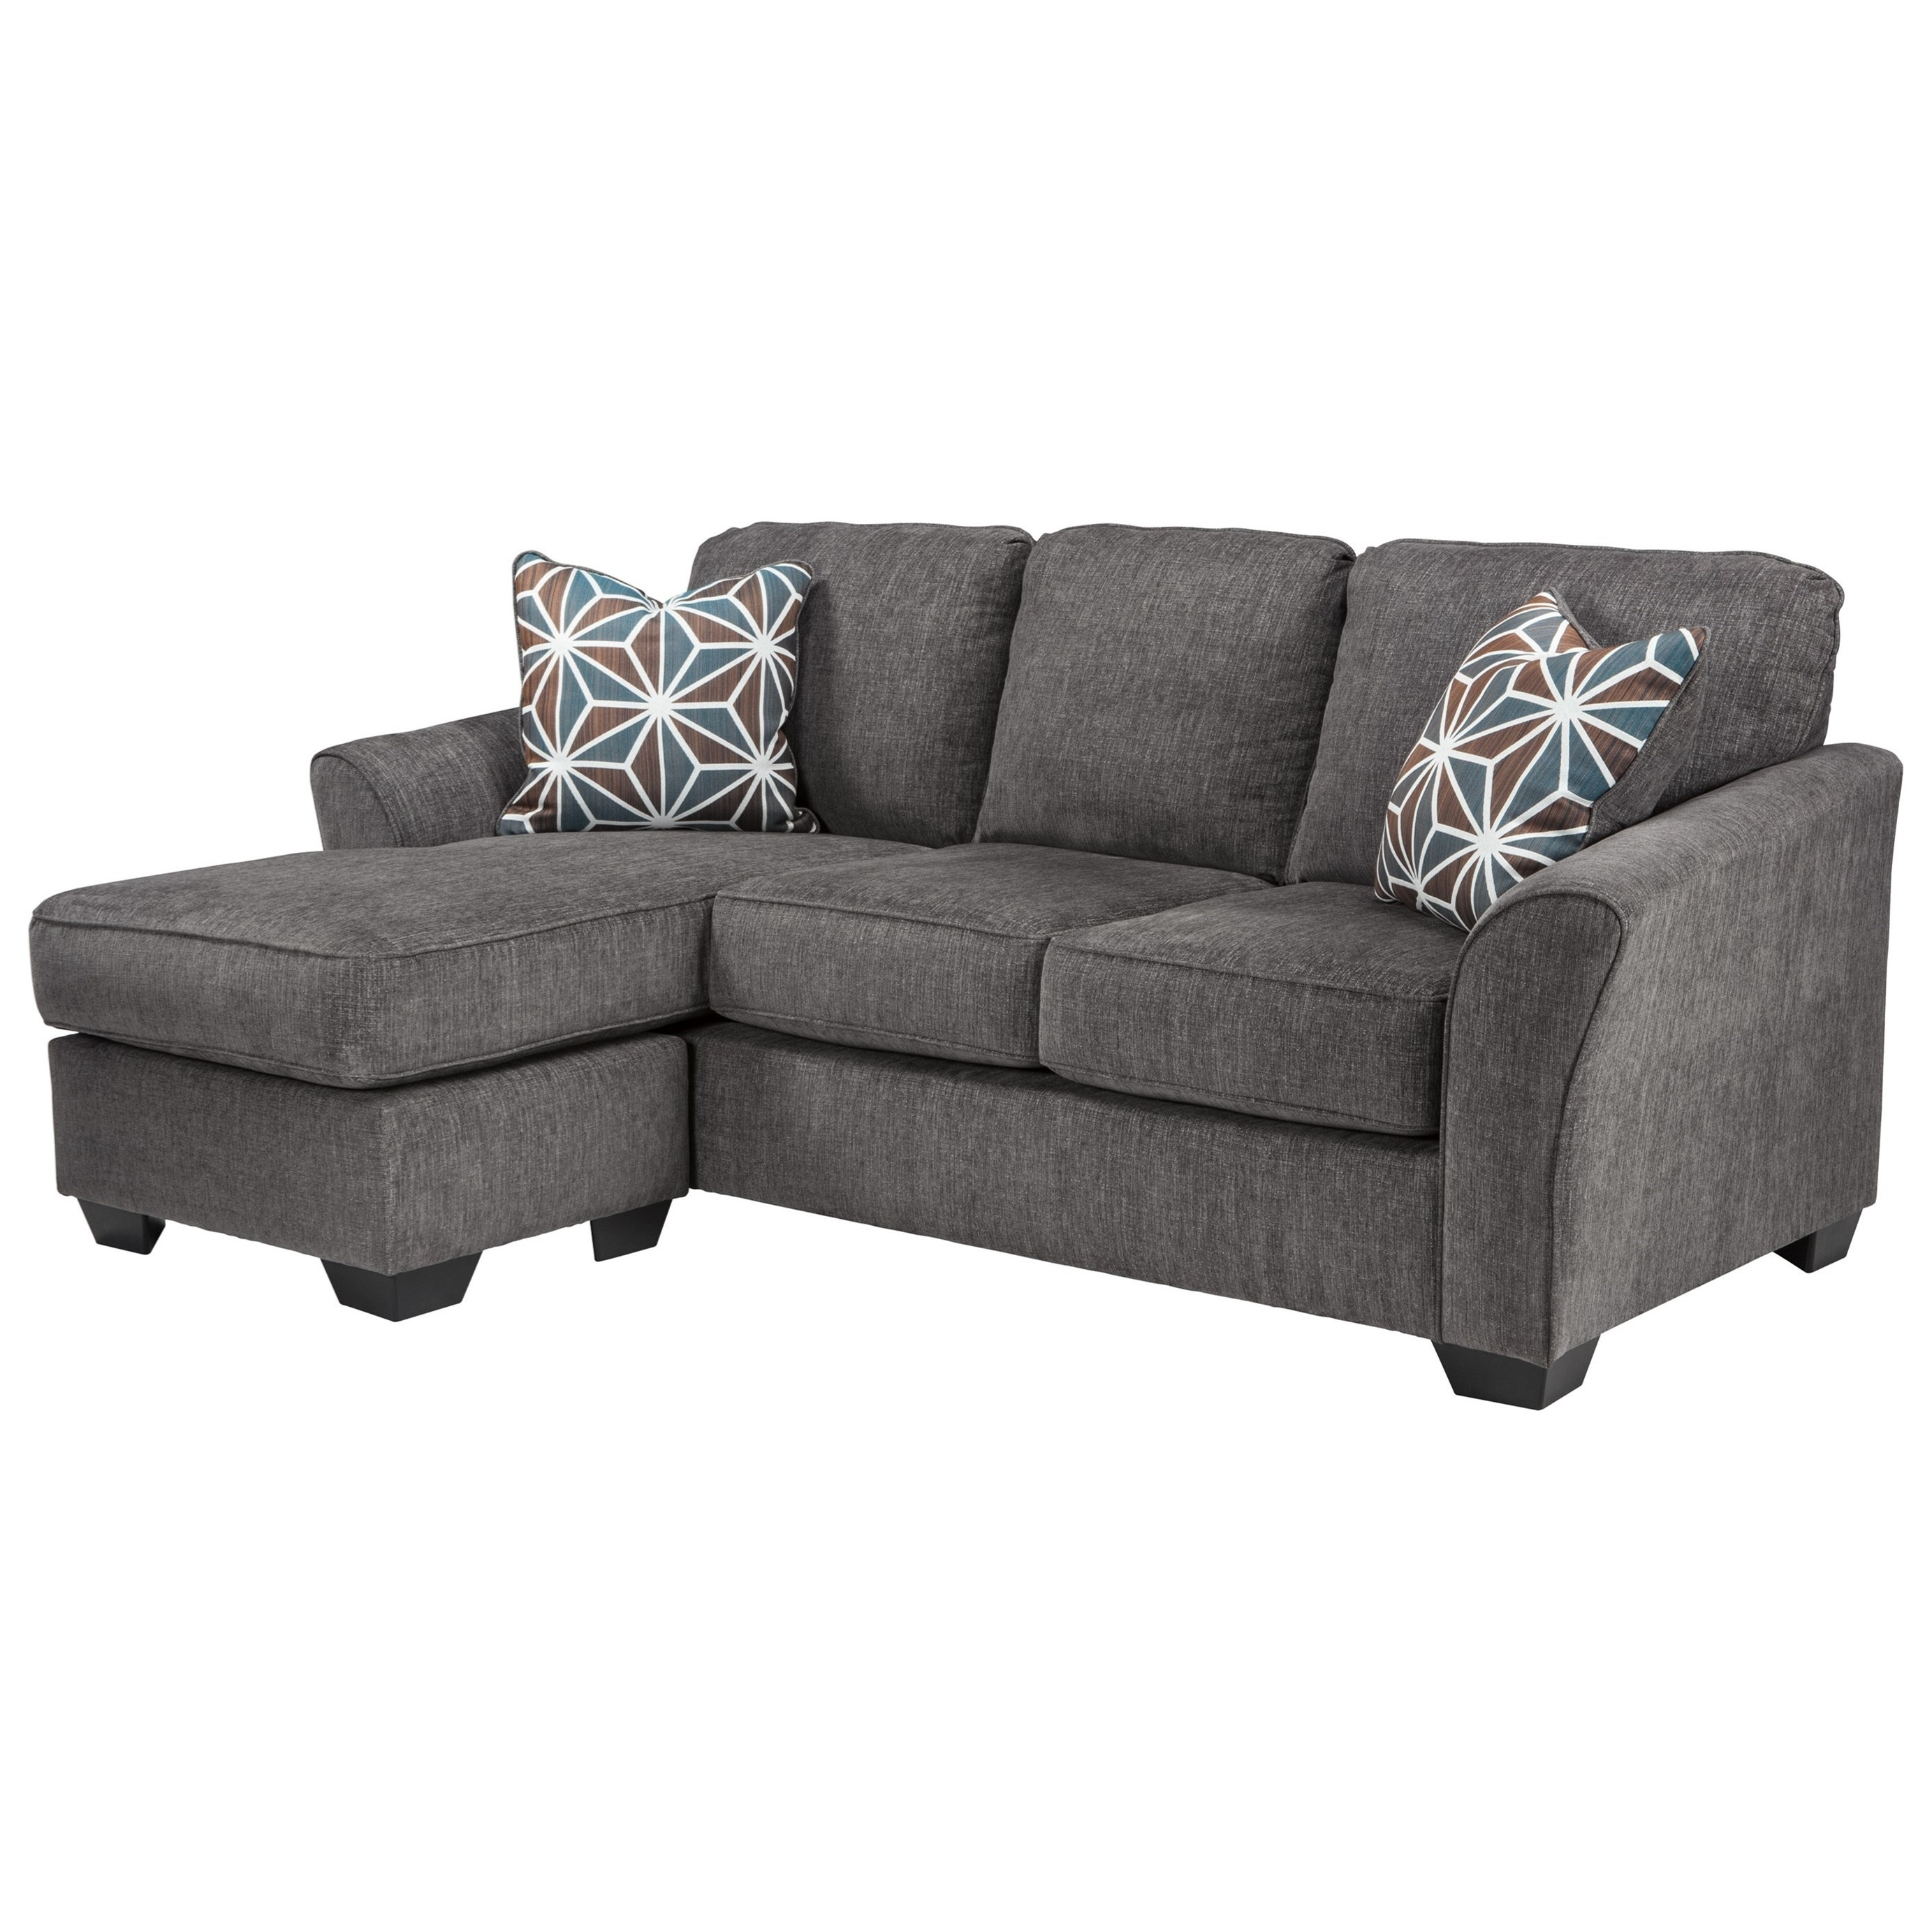 Widely Used Benchcraft Brise Casual Contemporary Queen Sofa Chaise Sleeper Throughout Chaise Sleepers (View 15 of 15)